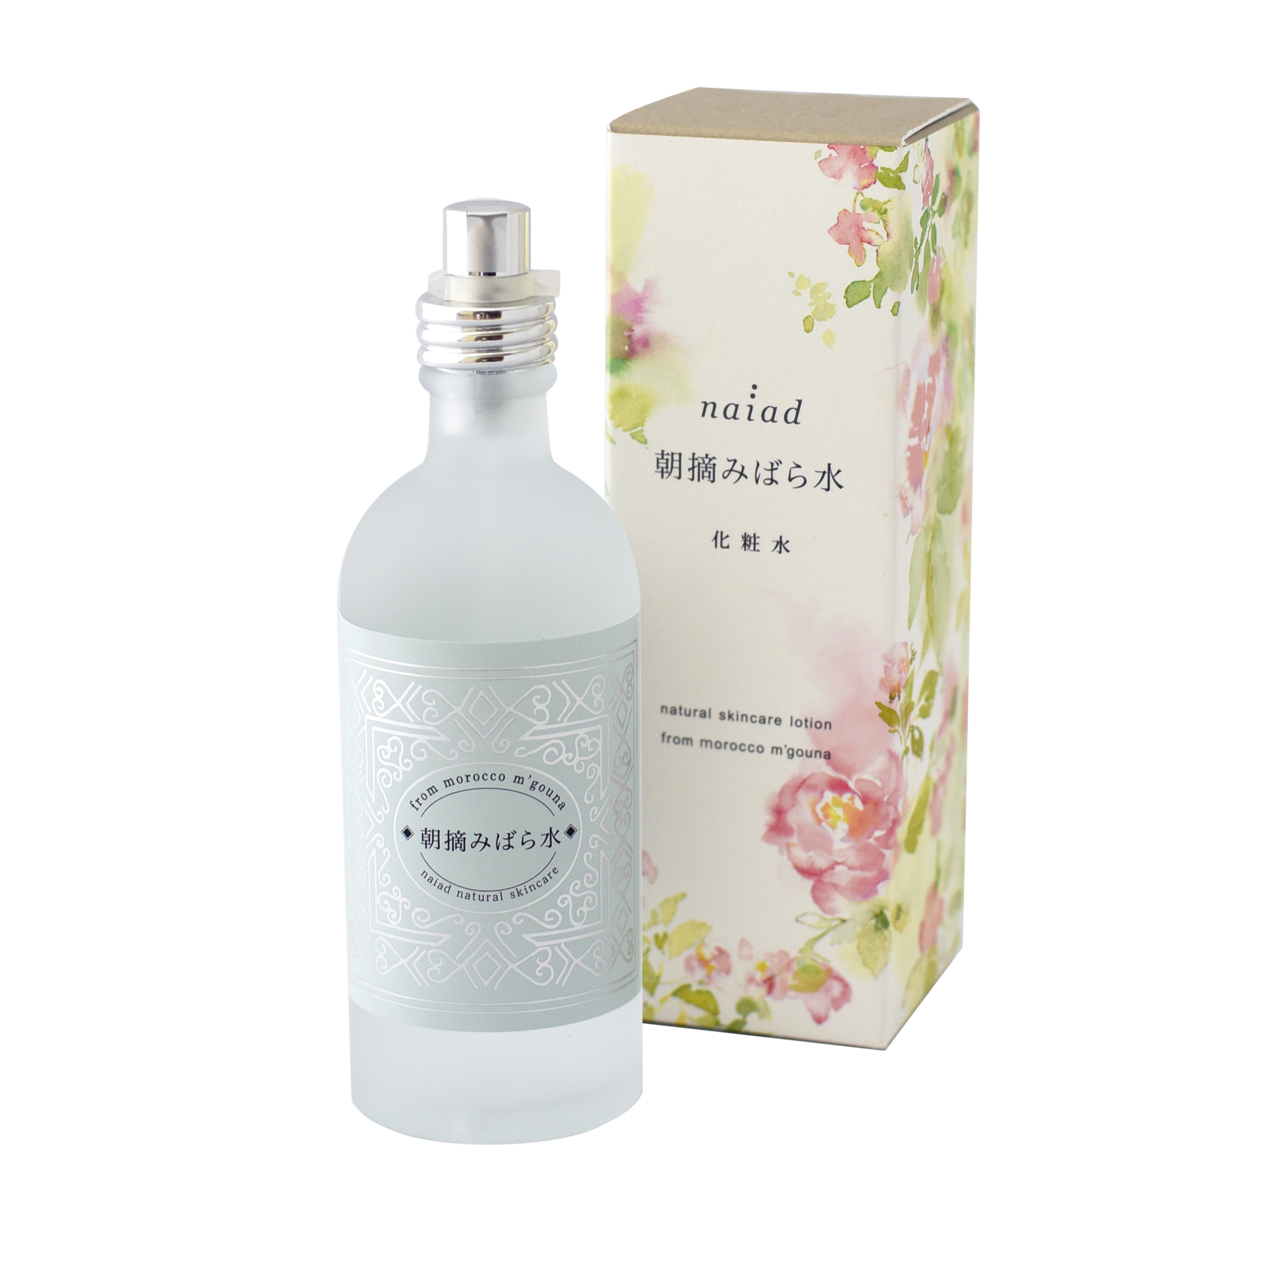 Japanese natural rose water facial mist hydrosol for skin care